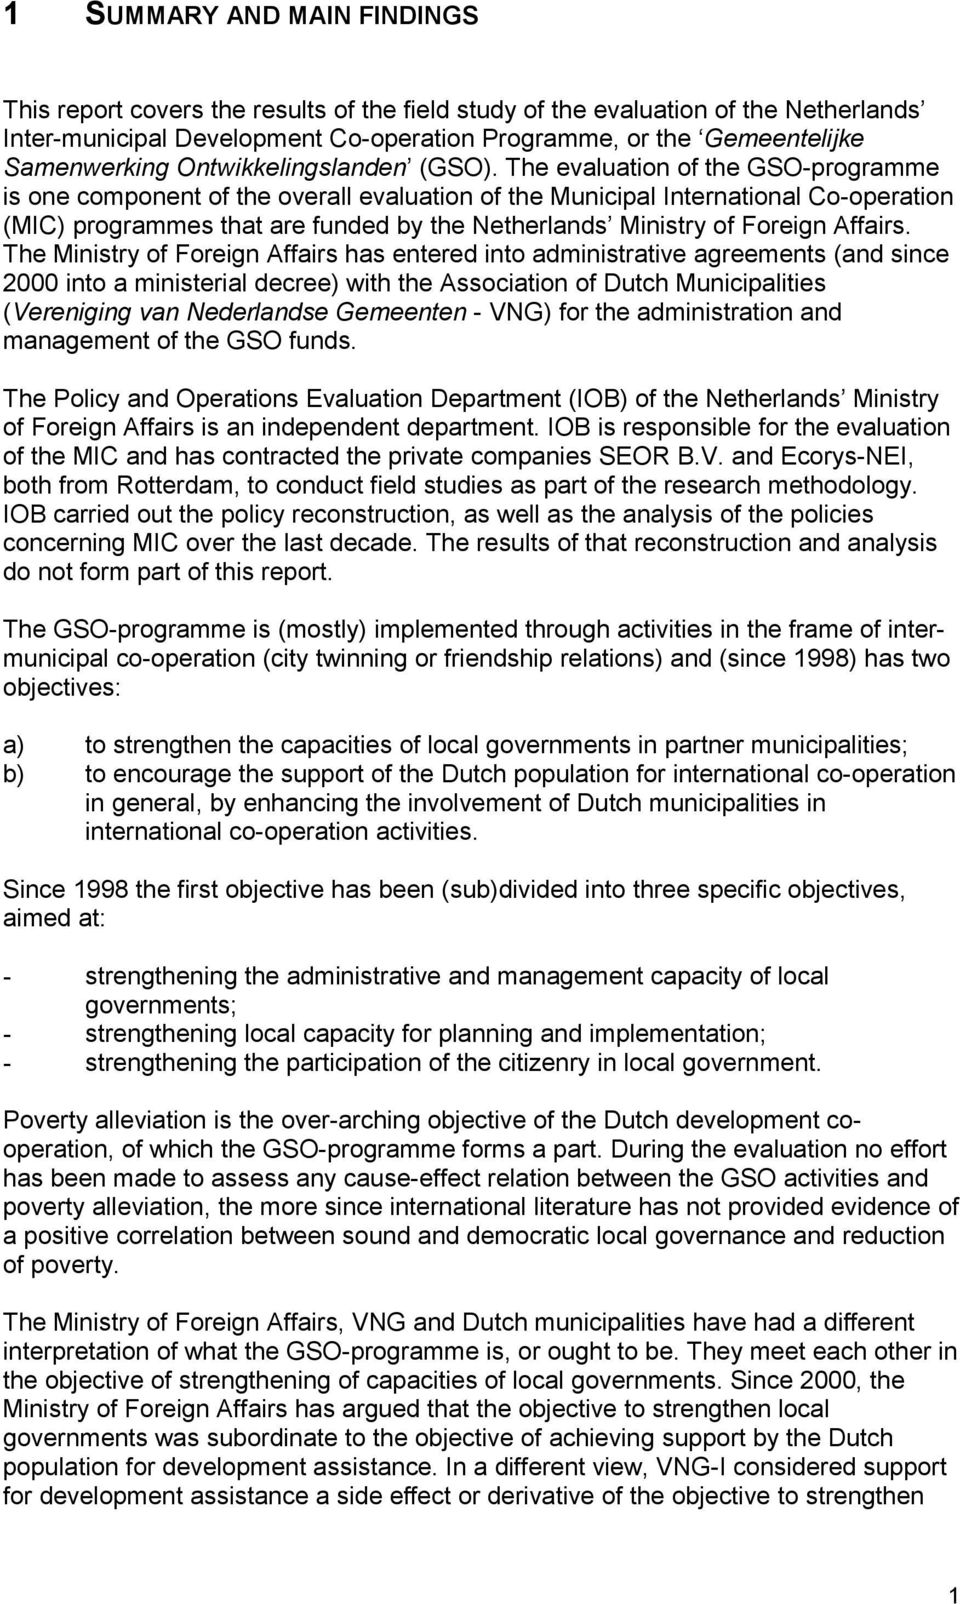 The evaluation of the GSO-programme is one component of the overall evaluation of the Municipal International Co-operation (MIC) programmes that are funded by the Netherlands Ministry of Foreign